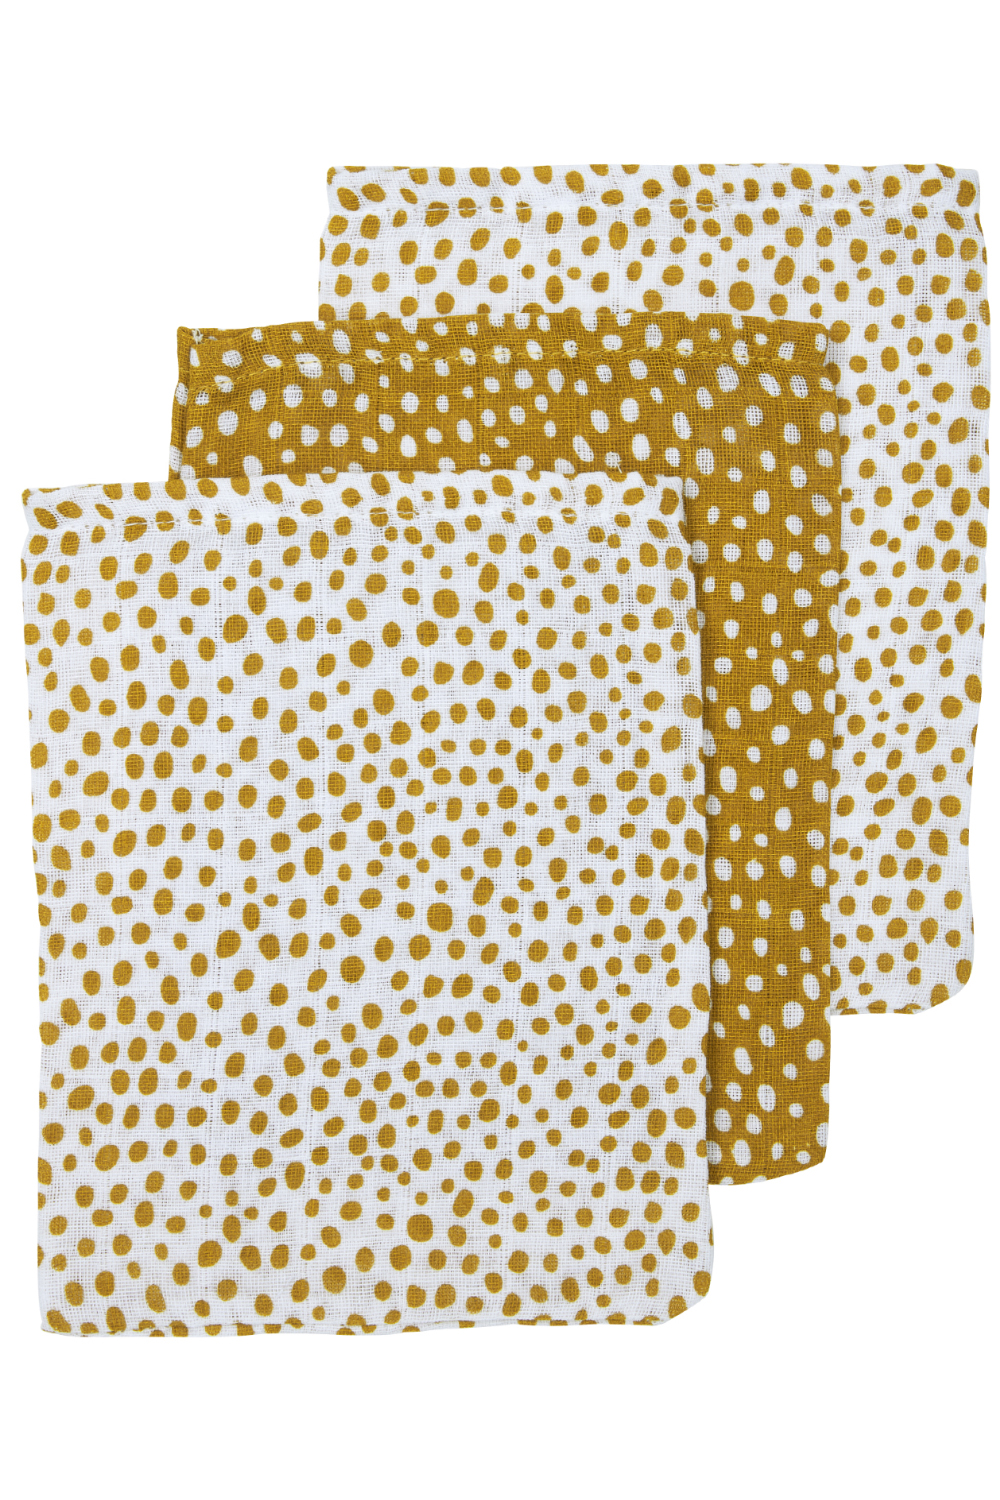 Hydrofiele Washandjes 3-Pack Cheetah - Honey Gold - 20x17cm